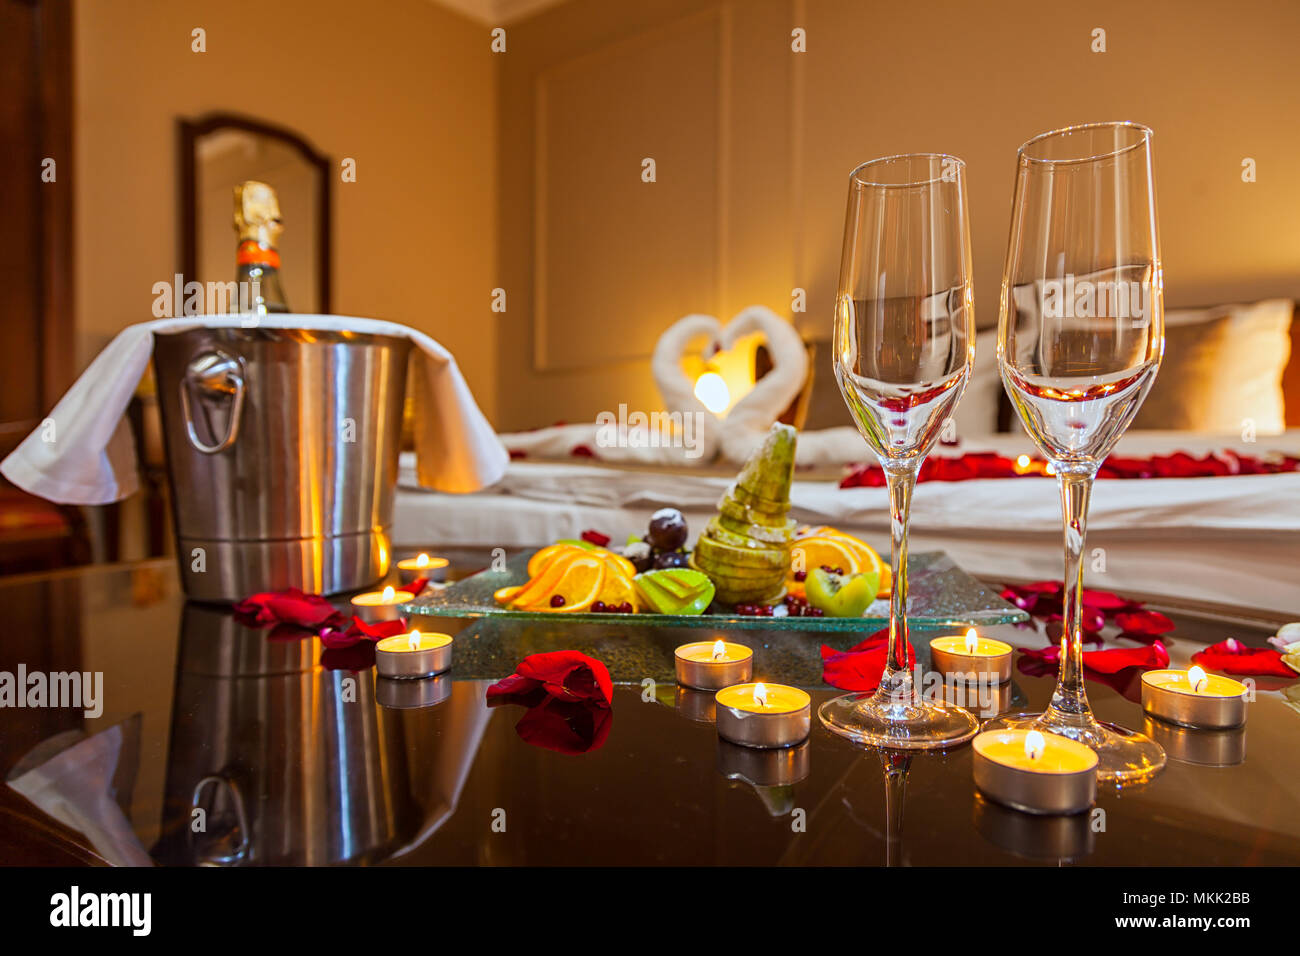 Hotel Room For A Honeymoon Table With Fruit Plate And Candles In The Background Bed Decorated Swans Of Towels Rose Petals